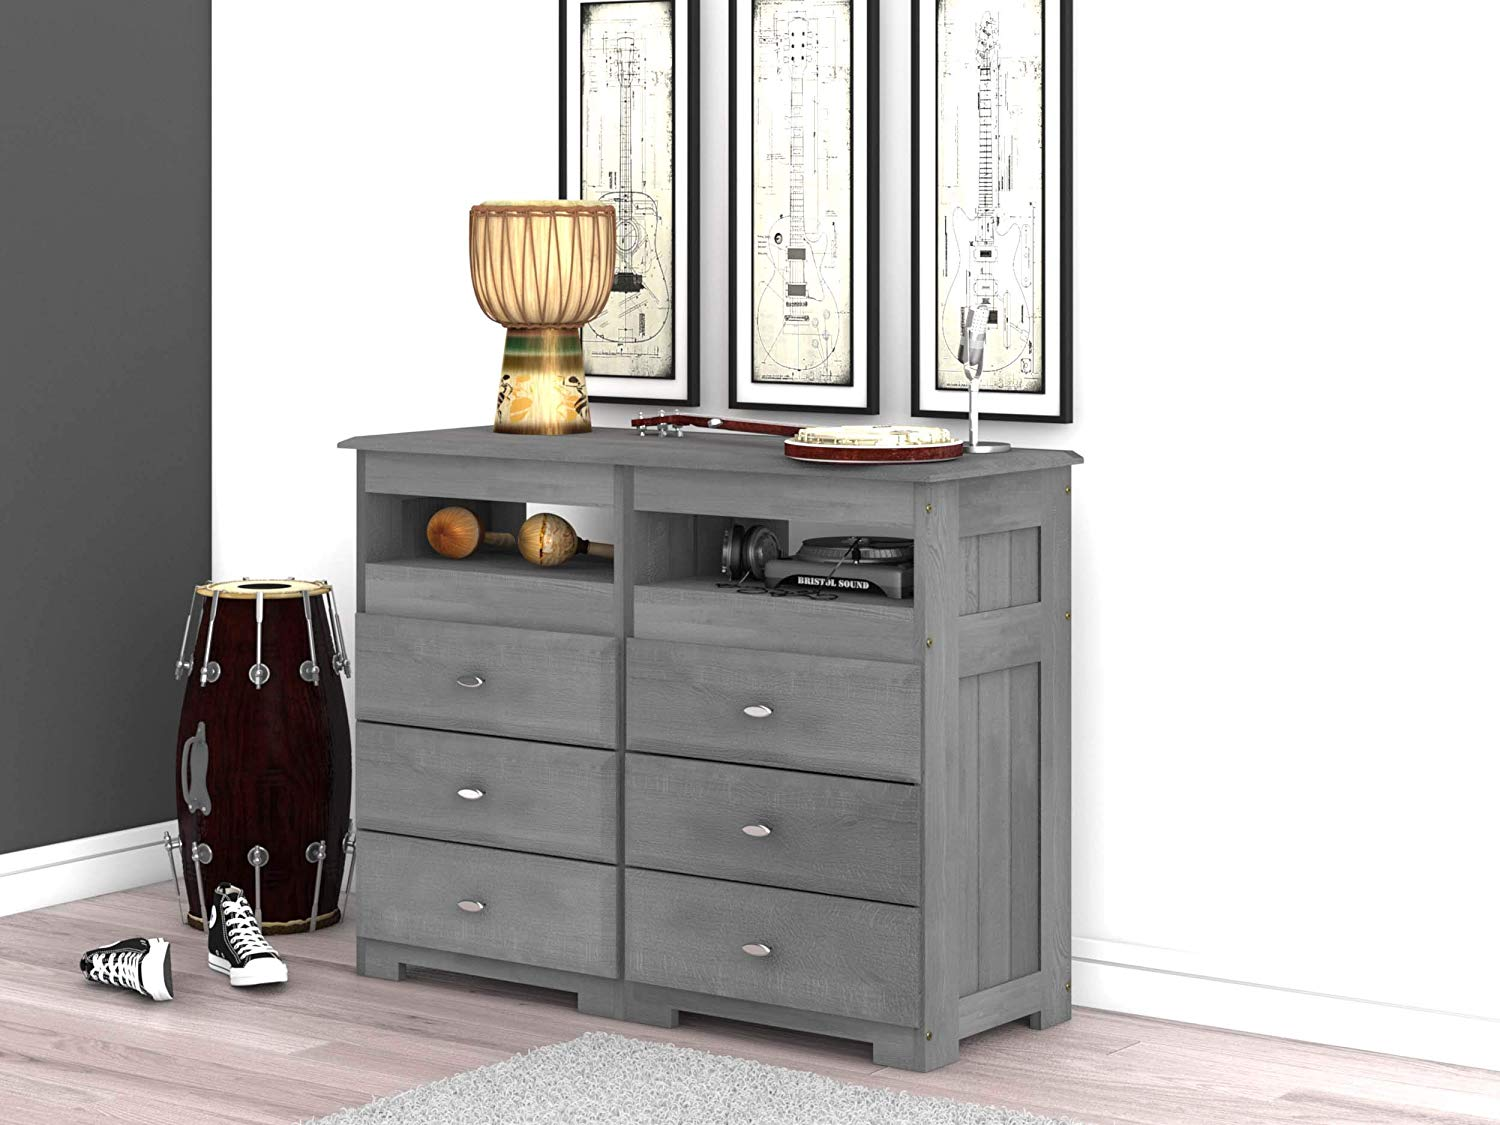 Discovery World Furniture Charcoal 6 Drawer Entertainment Dresser